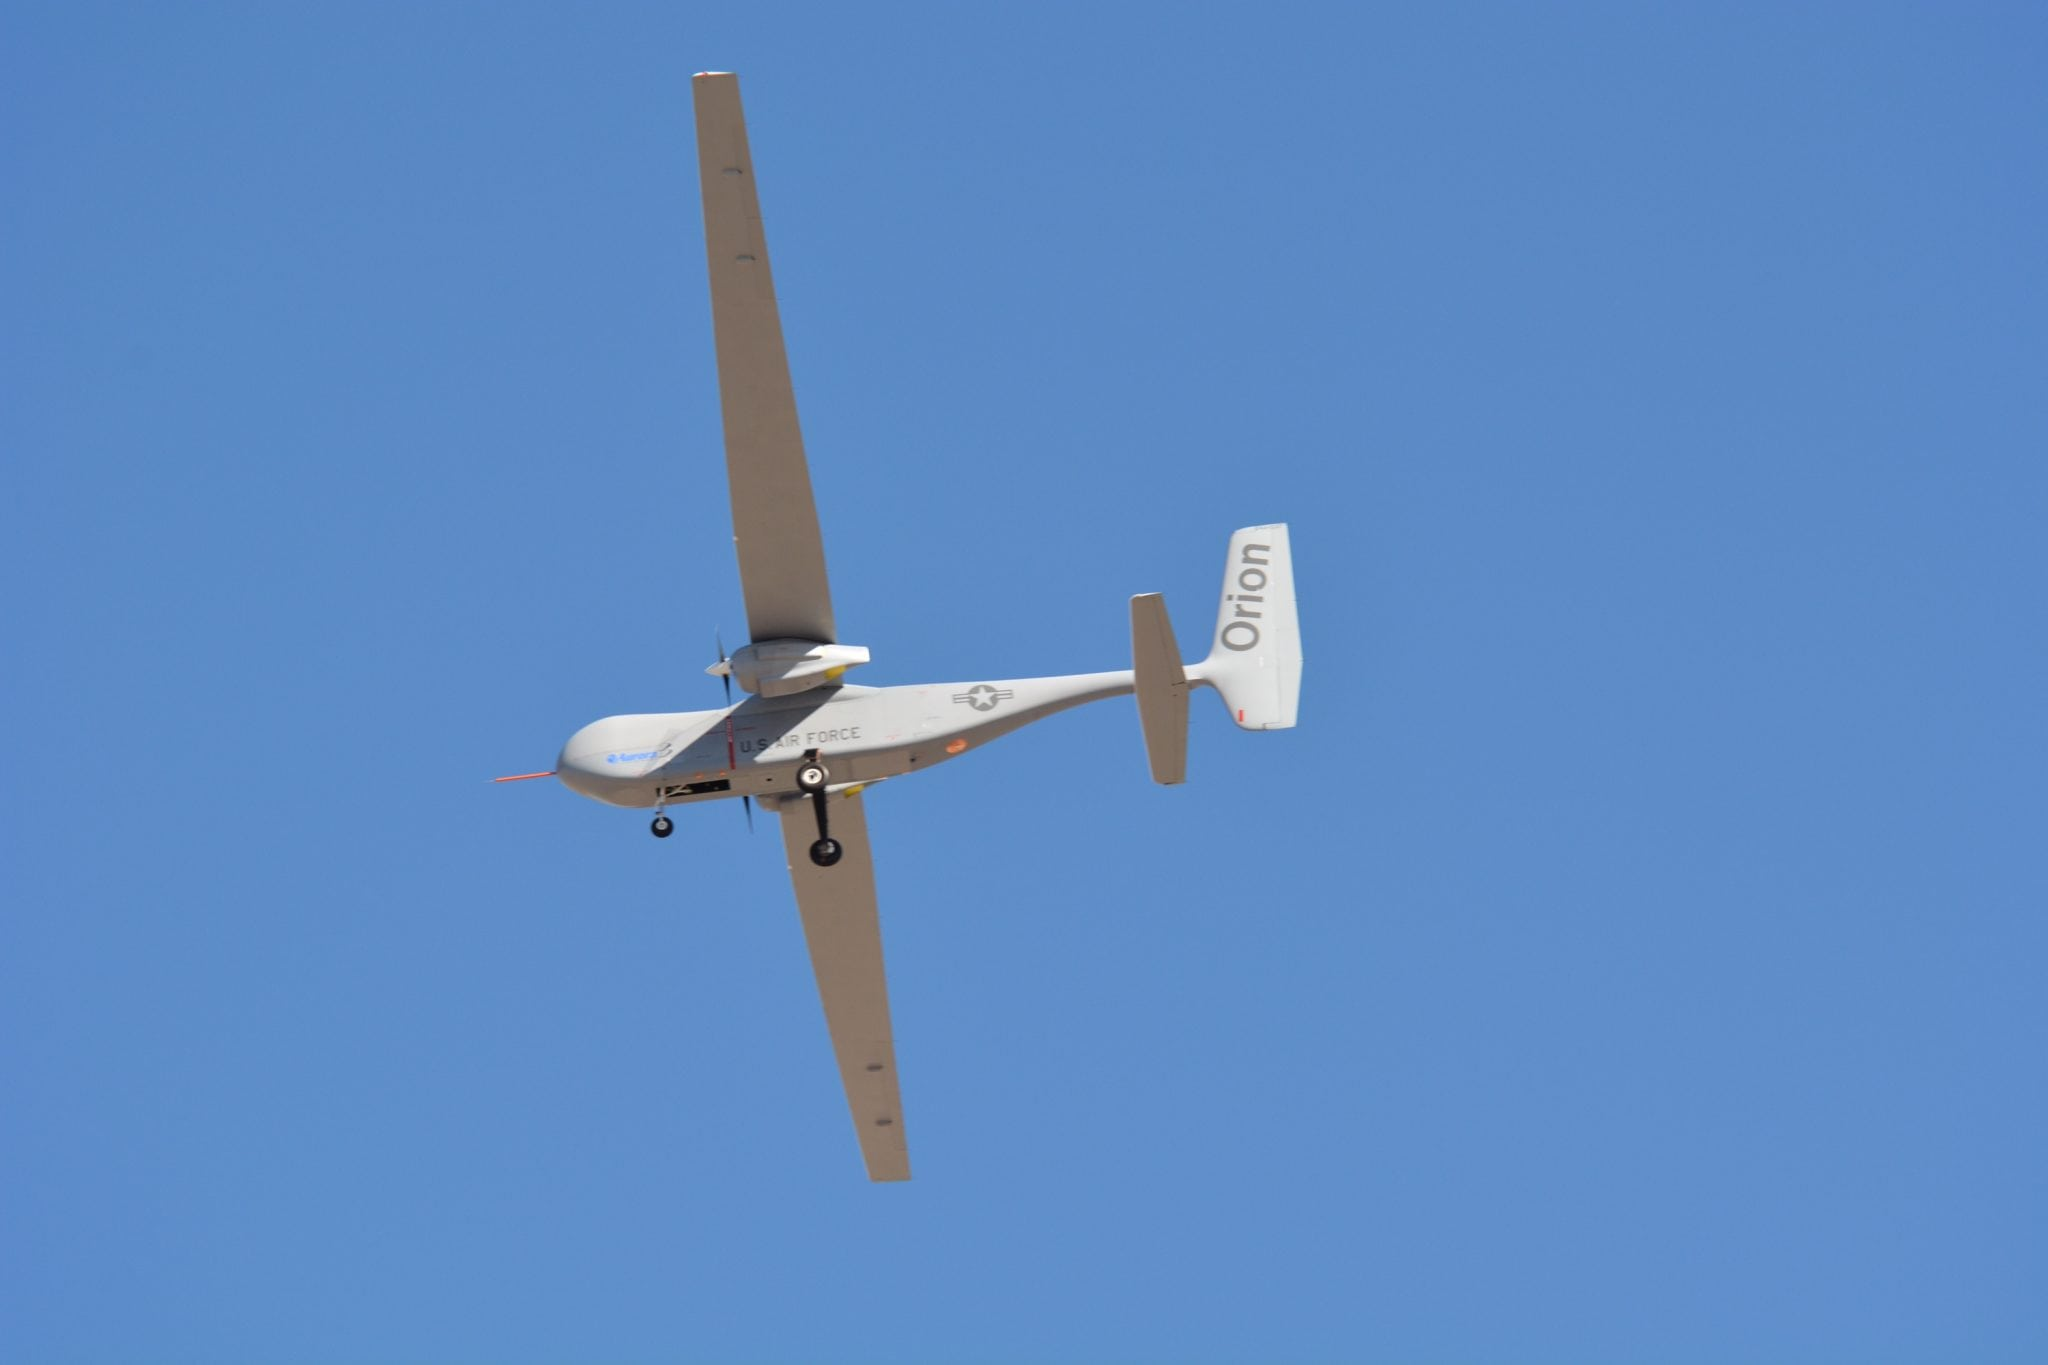 The Orion UAS in flight